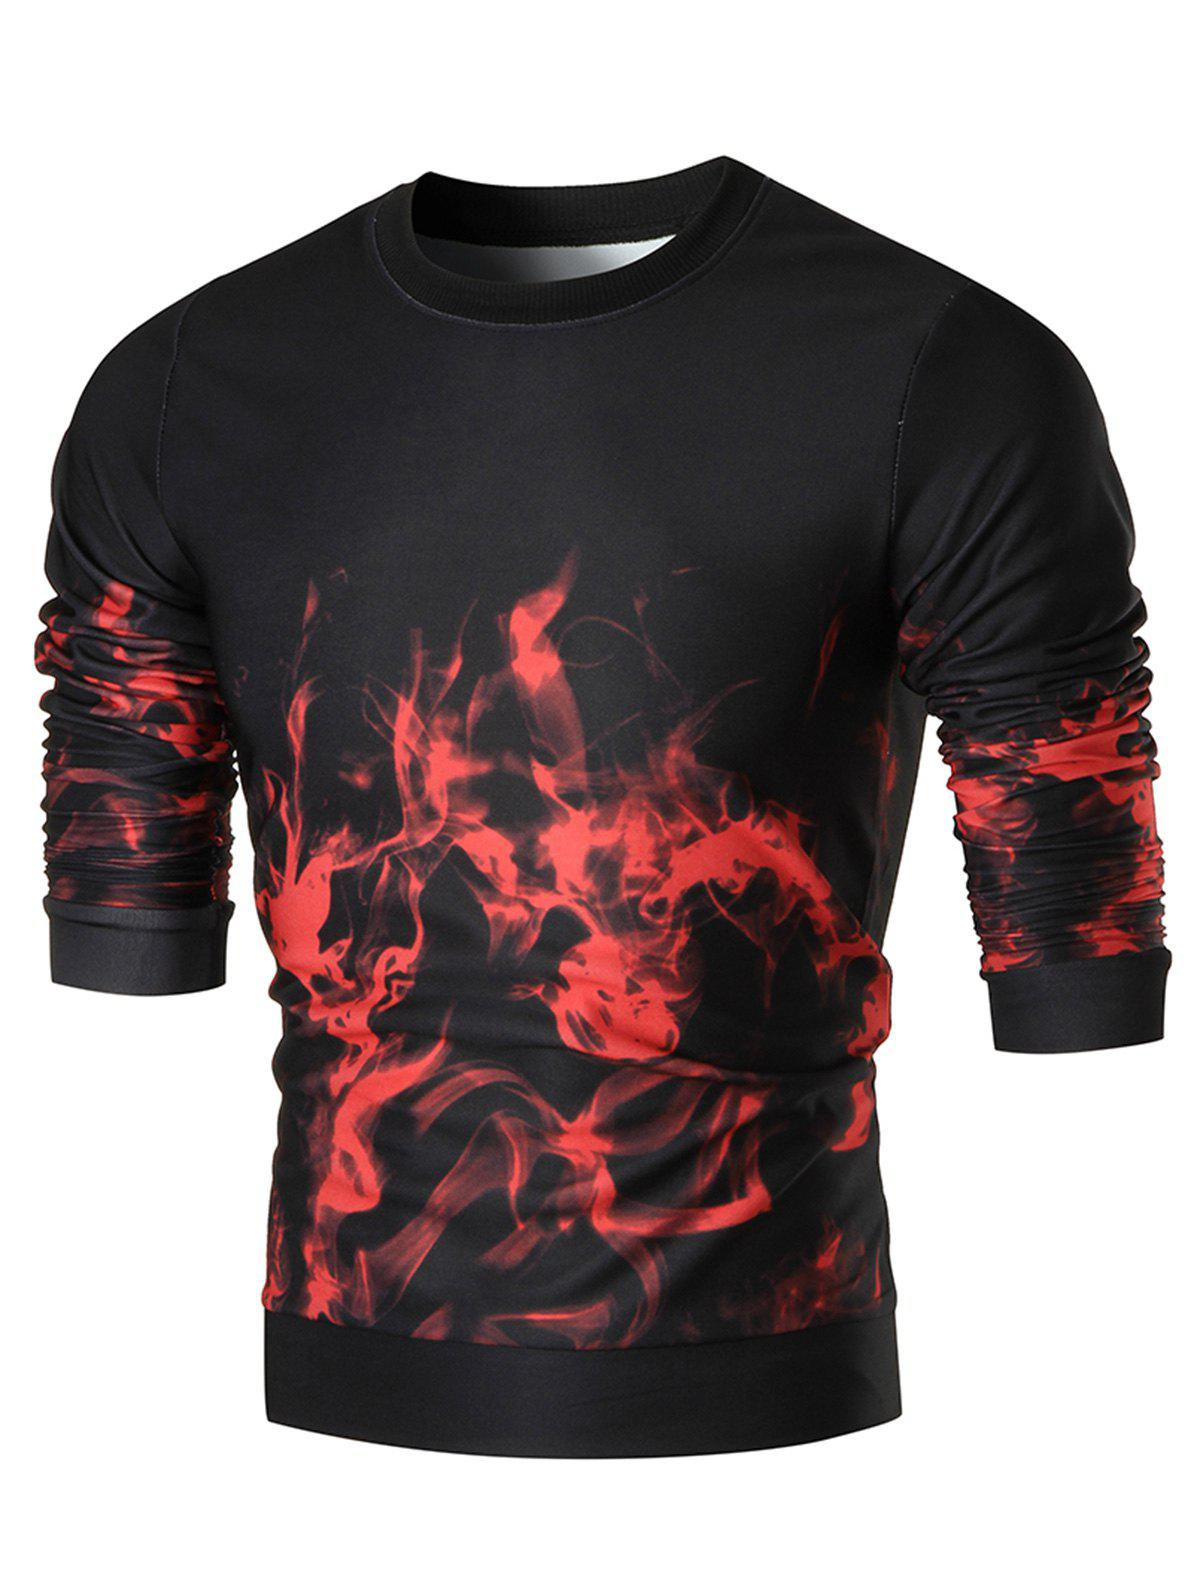 Flame Print Slim Fit Crew Neck Sweatshirt - COLORMIX L